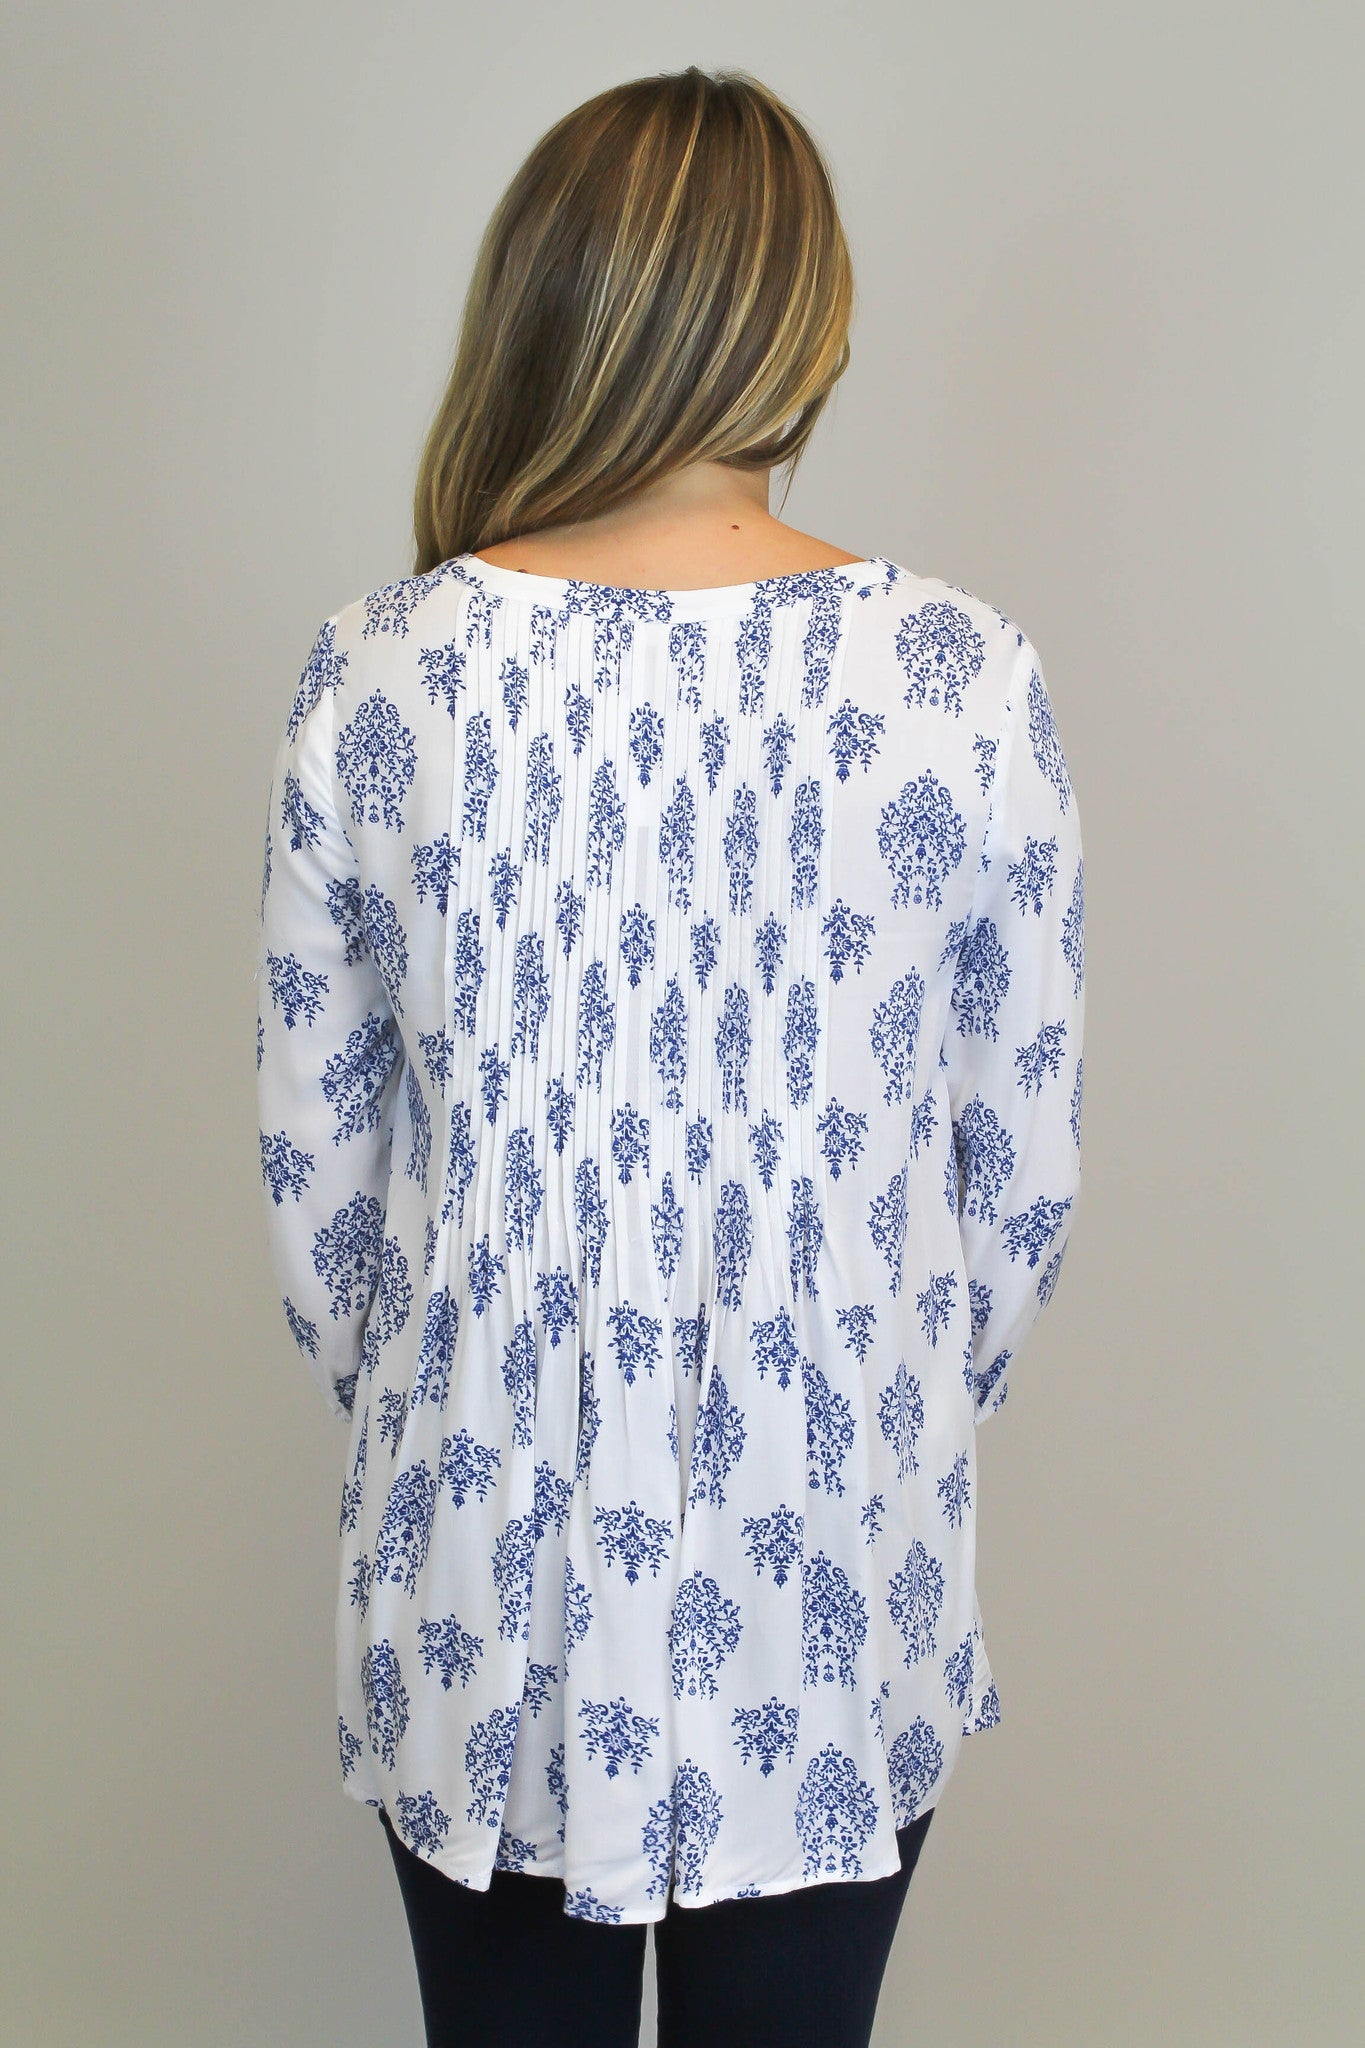 White + Blue Printed Top